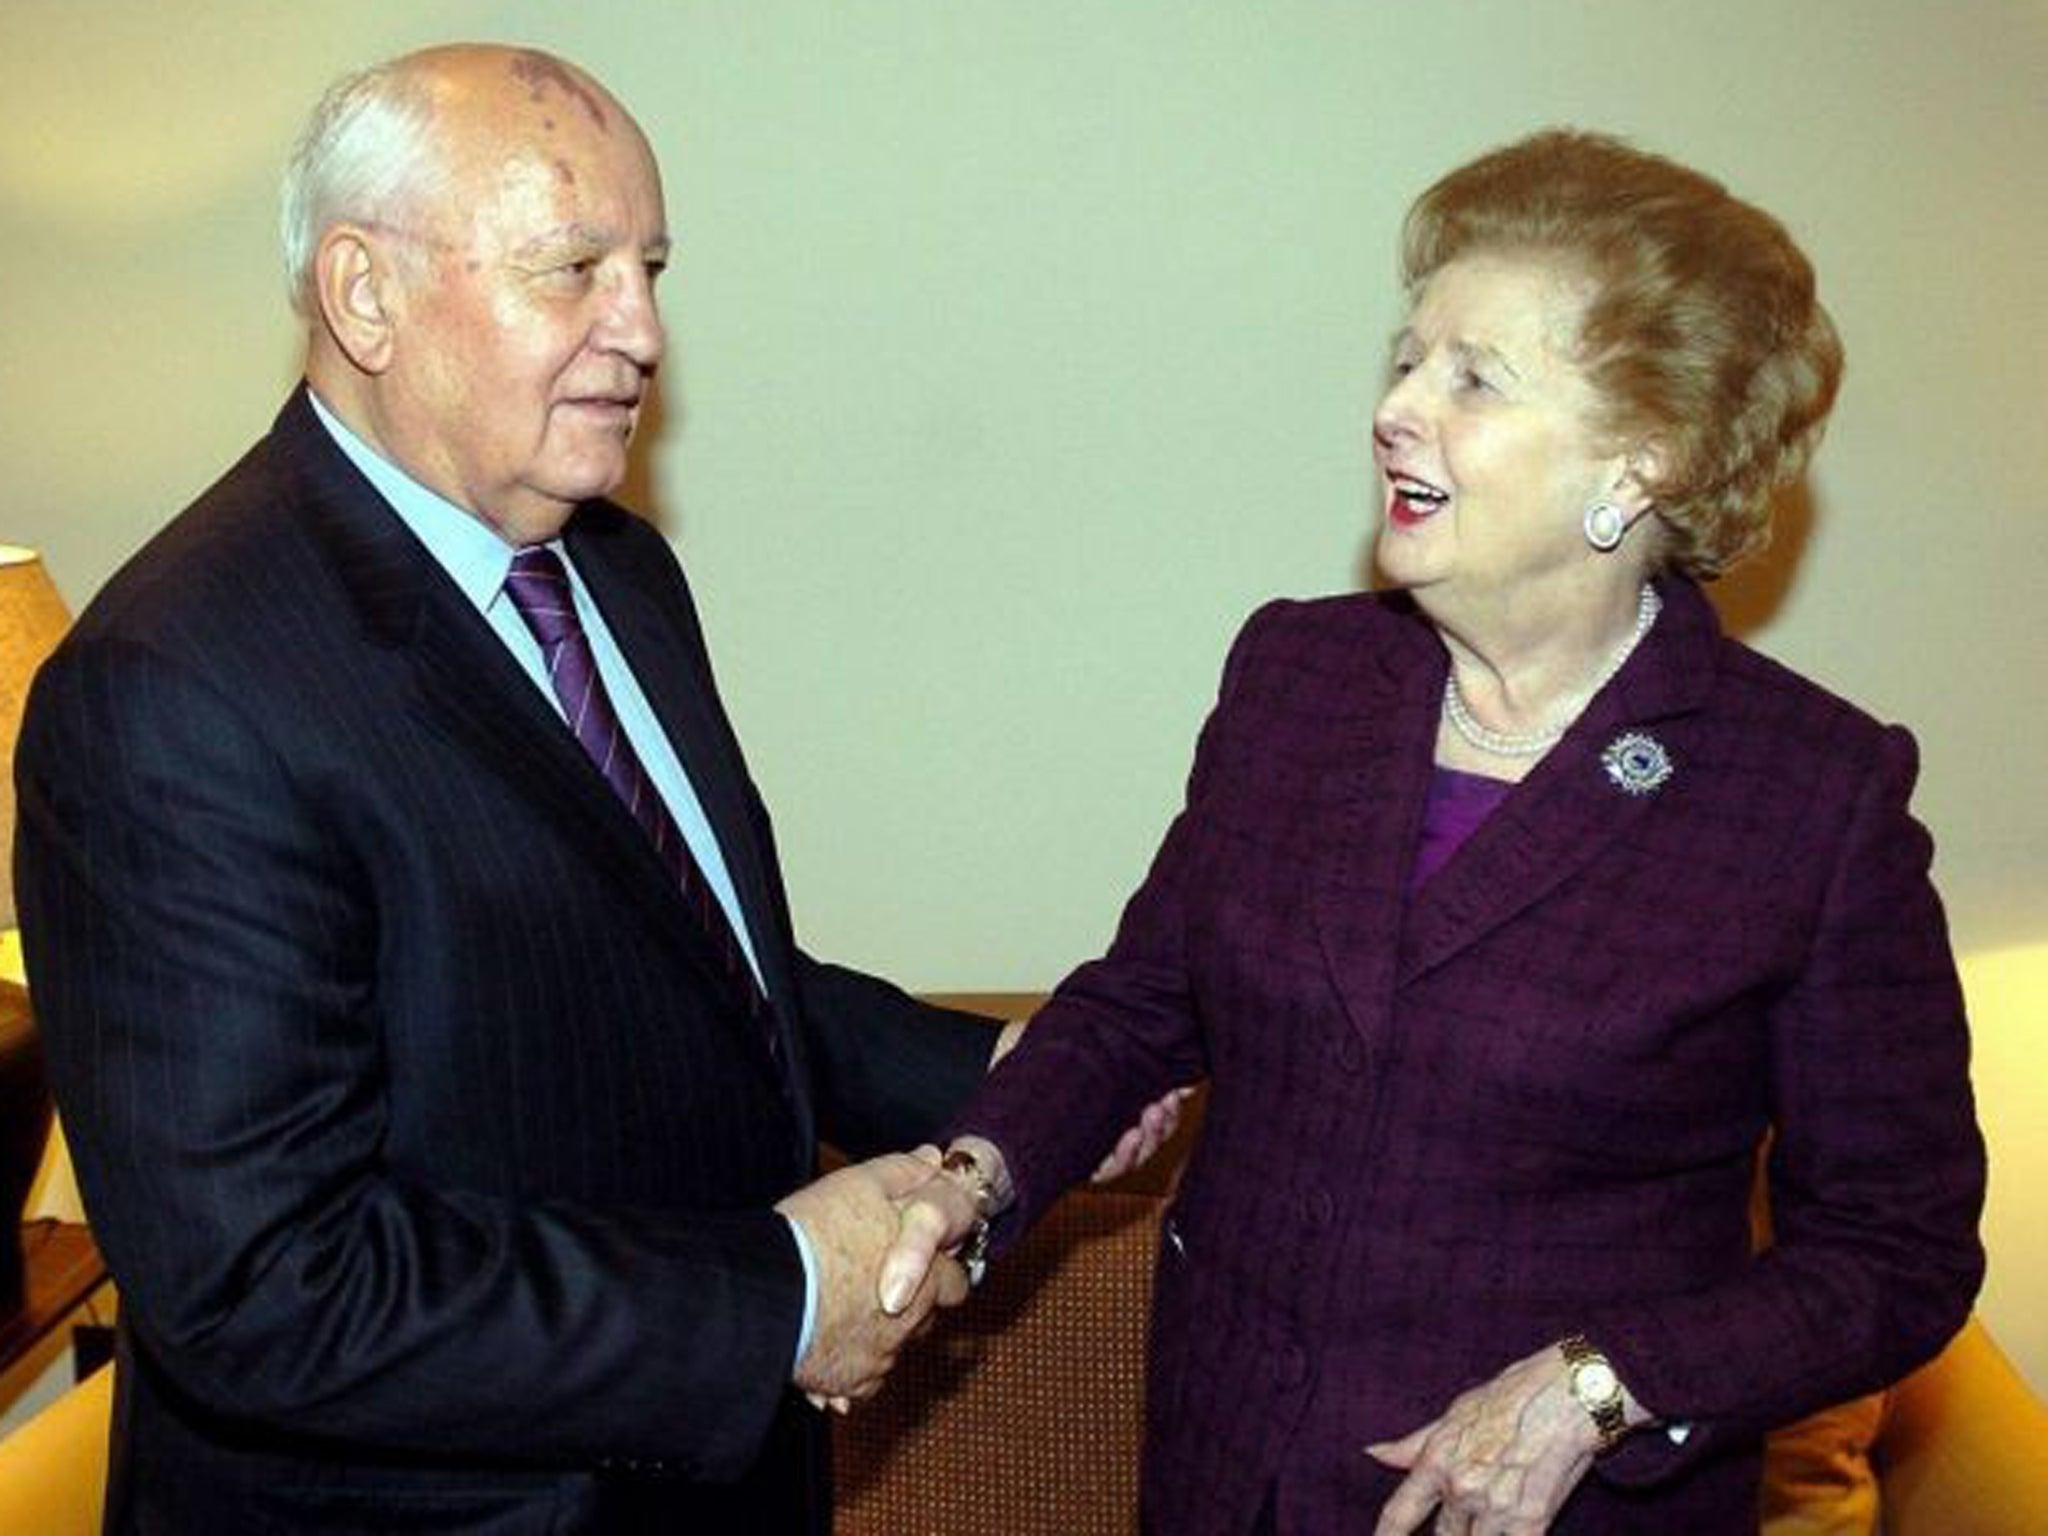 Jeremy Clarkson, Shirley Bassey and Tony Blair, but no Mikhail Gorbachev: Margaret Thatcher's funeral guest list announced